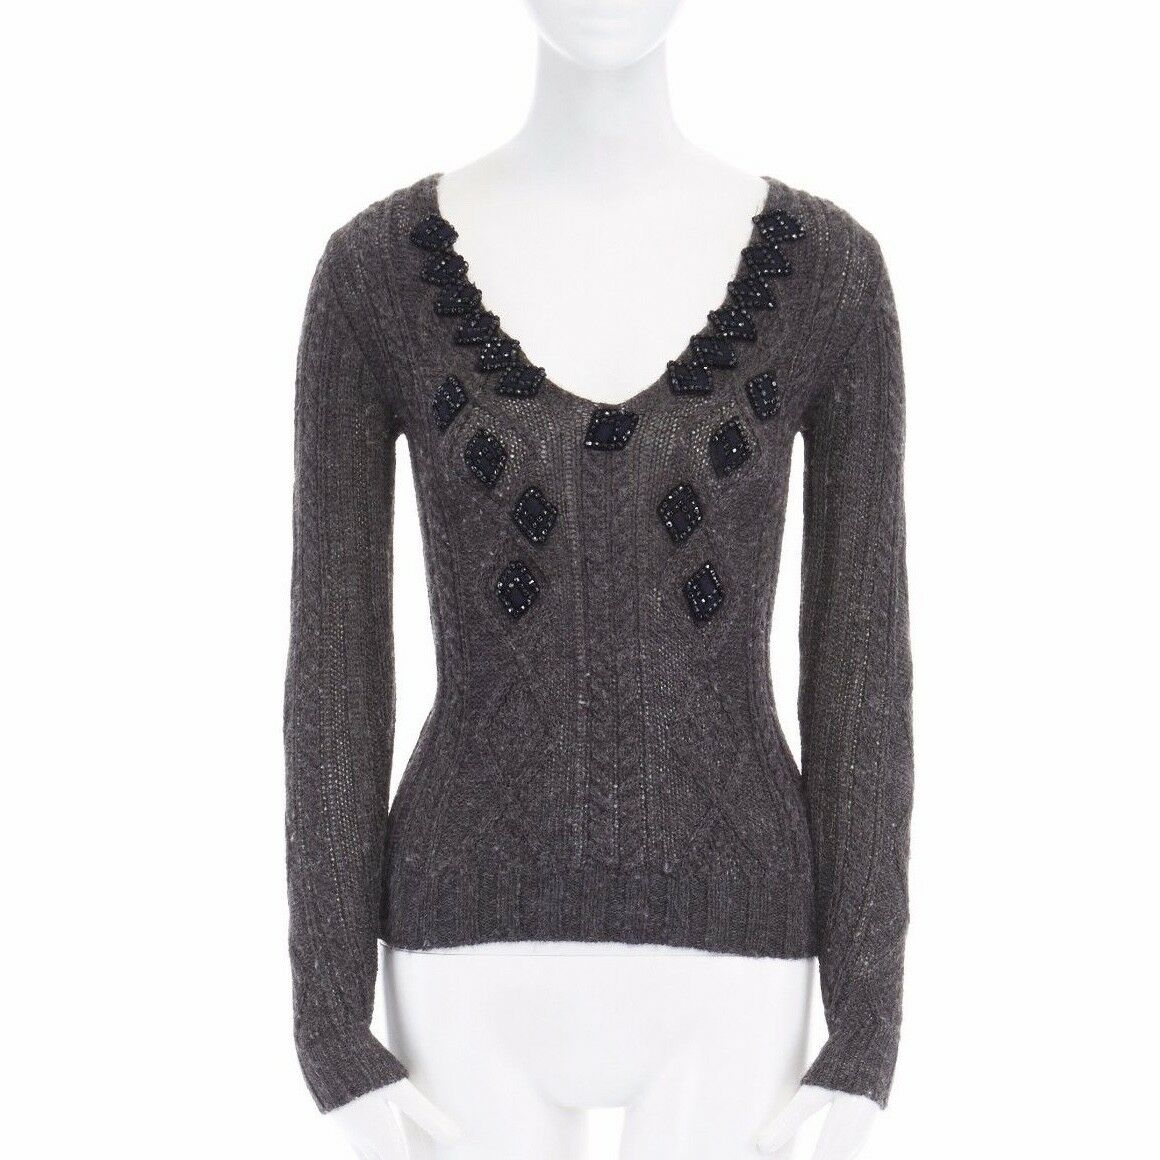 PRADA dark grey alpaca wool cable knit beaded patch embellished sweater top IT38